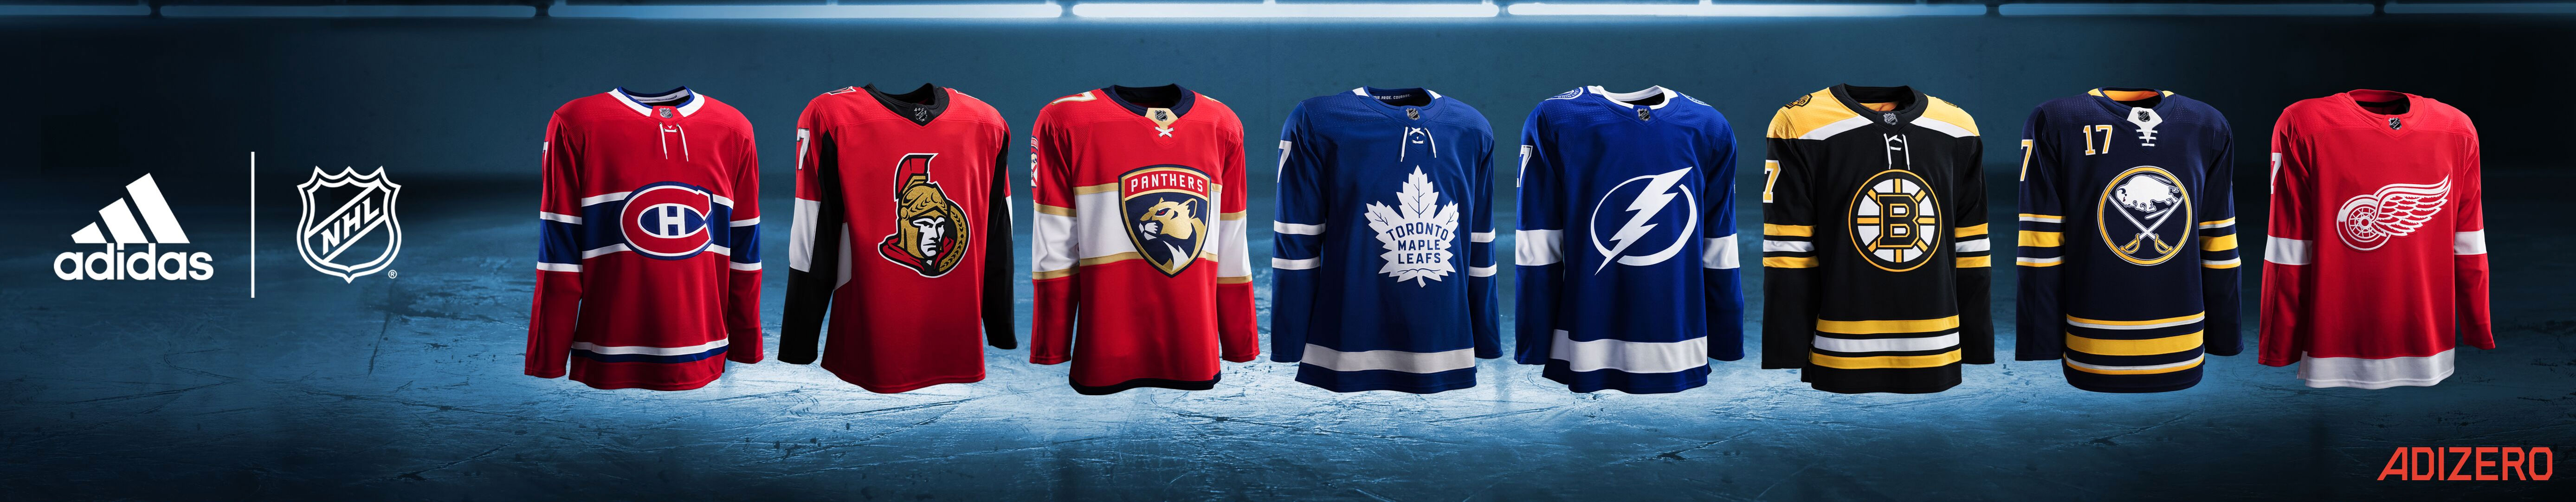 Adidas Unveils A New Look for the NHL  911f21d71